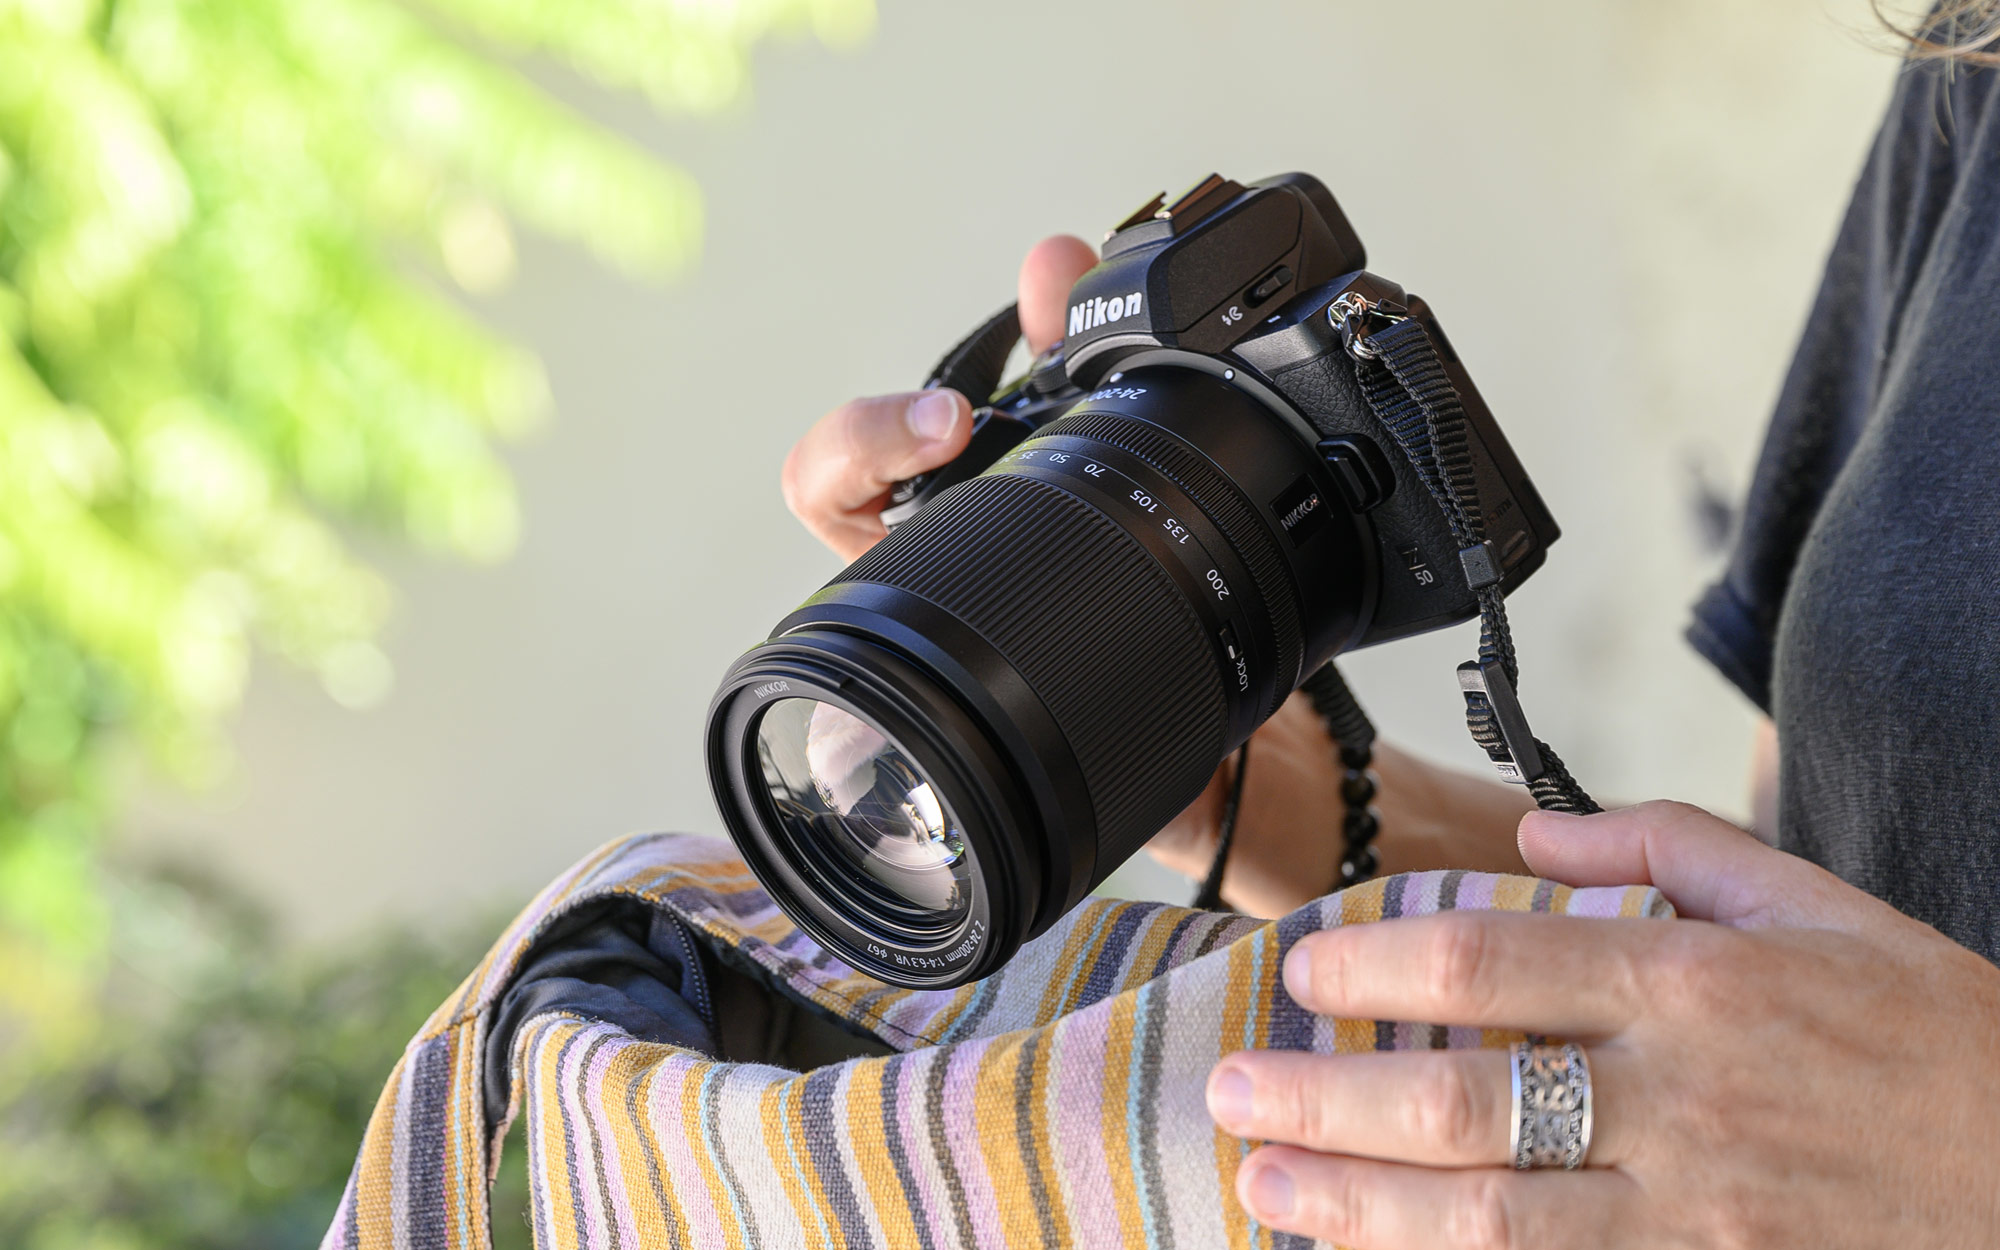 Photo of a woman's hands holding a Z 50 camera with the NIKKOR Z 24-200mm f/4-6.3 VR lens attached.